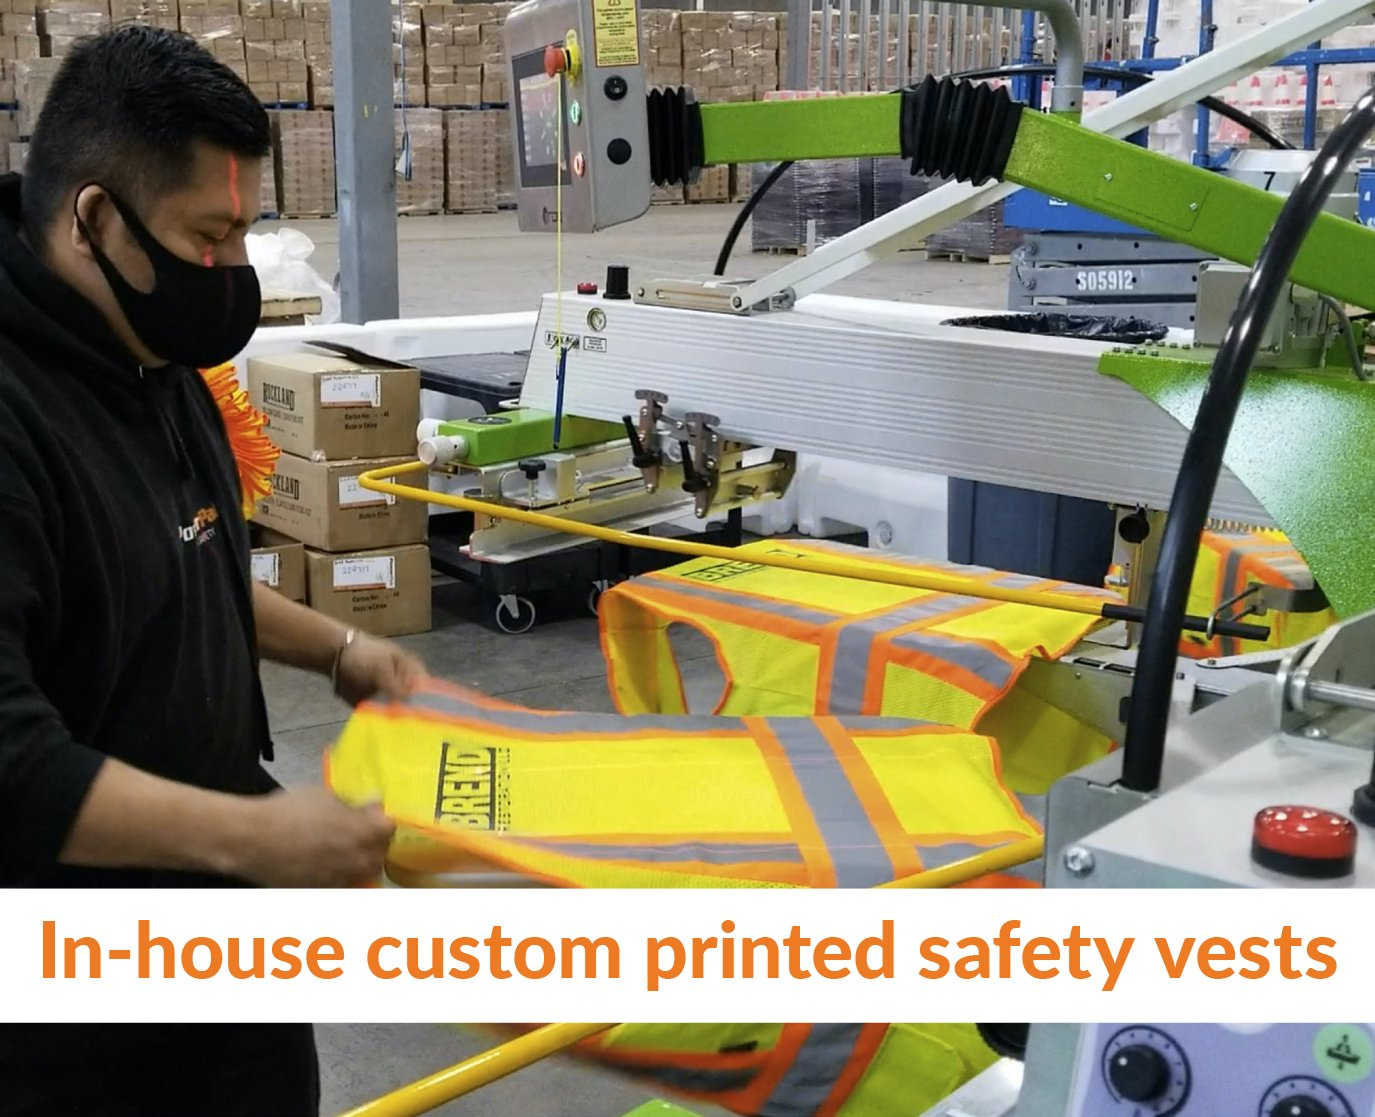 In house custom printed safety vests